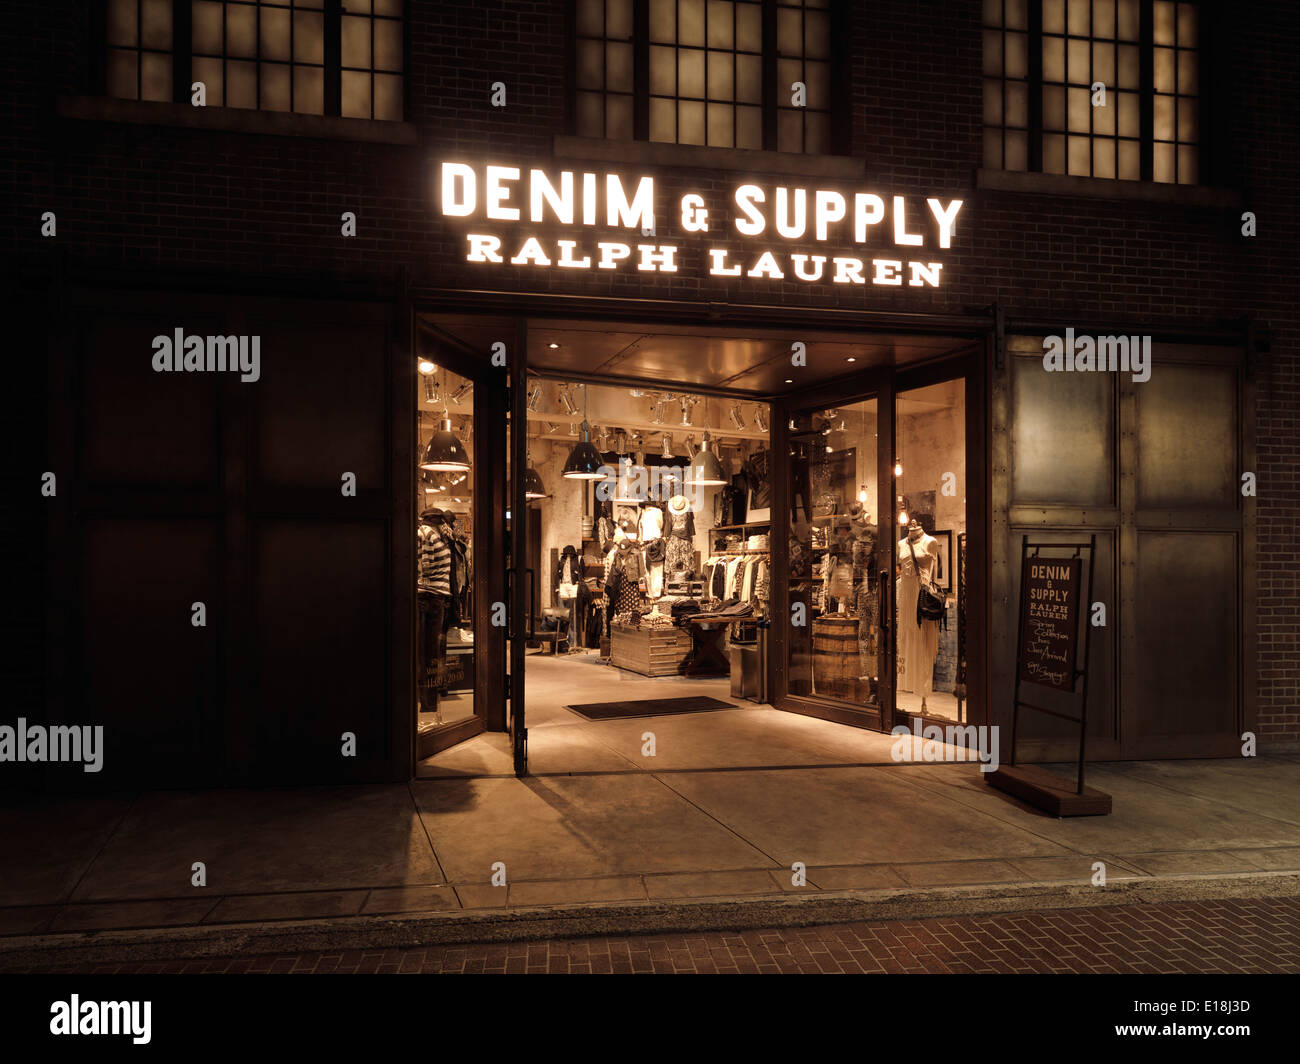 Ralph Lauren Denim and Supply, vintage styled fashion clothing store at night. Harajuku, Tokyo, Japan. - Stock Image